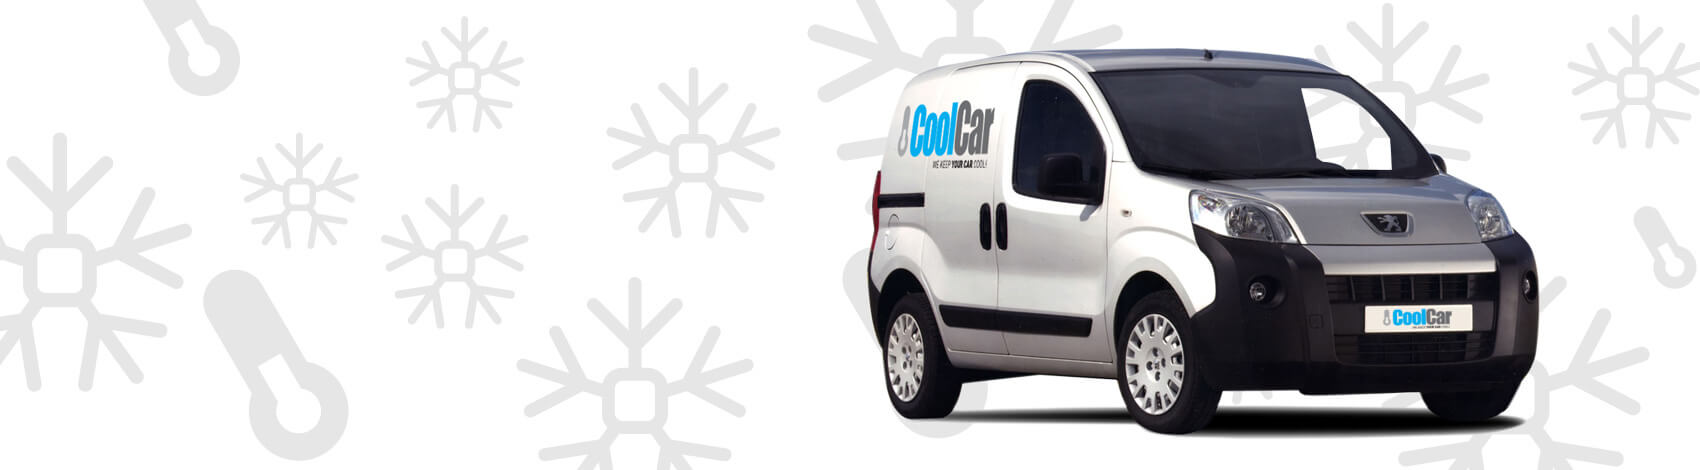 Air Conditioning Franchise Wanted